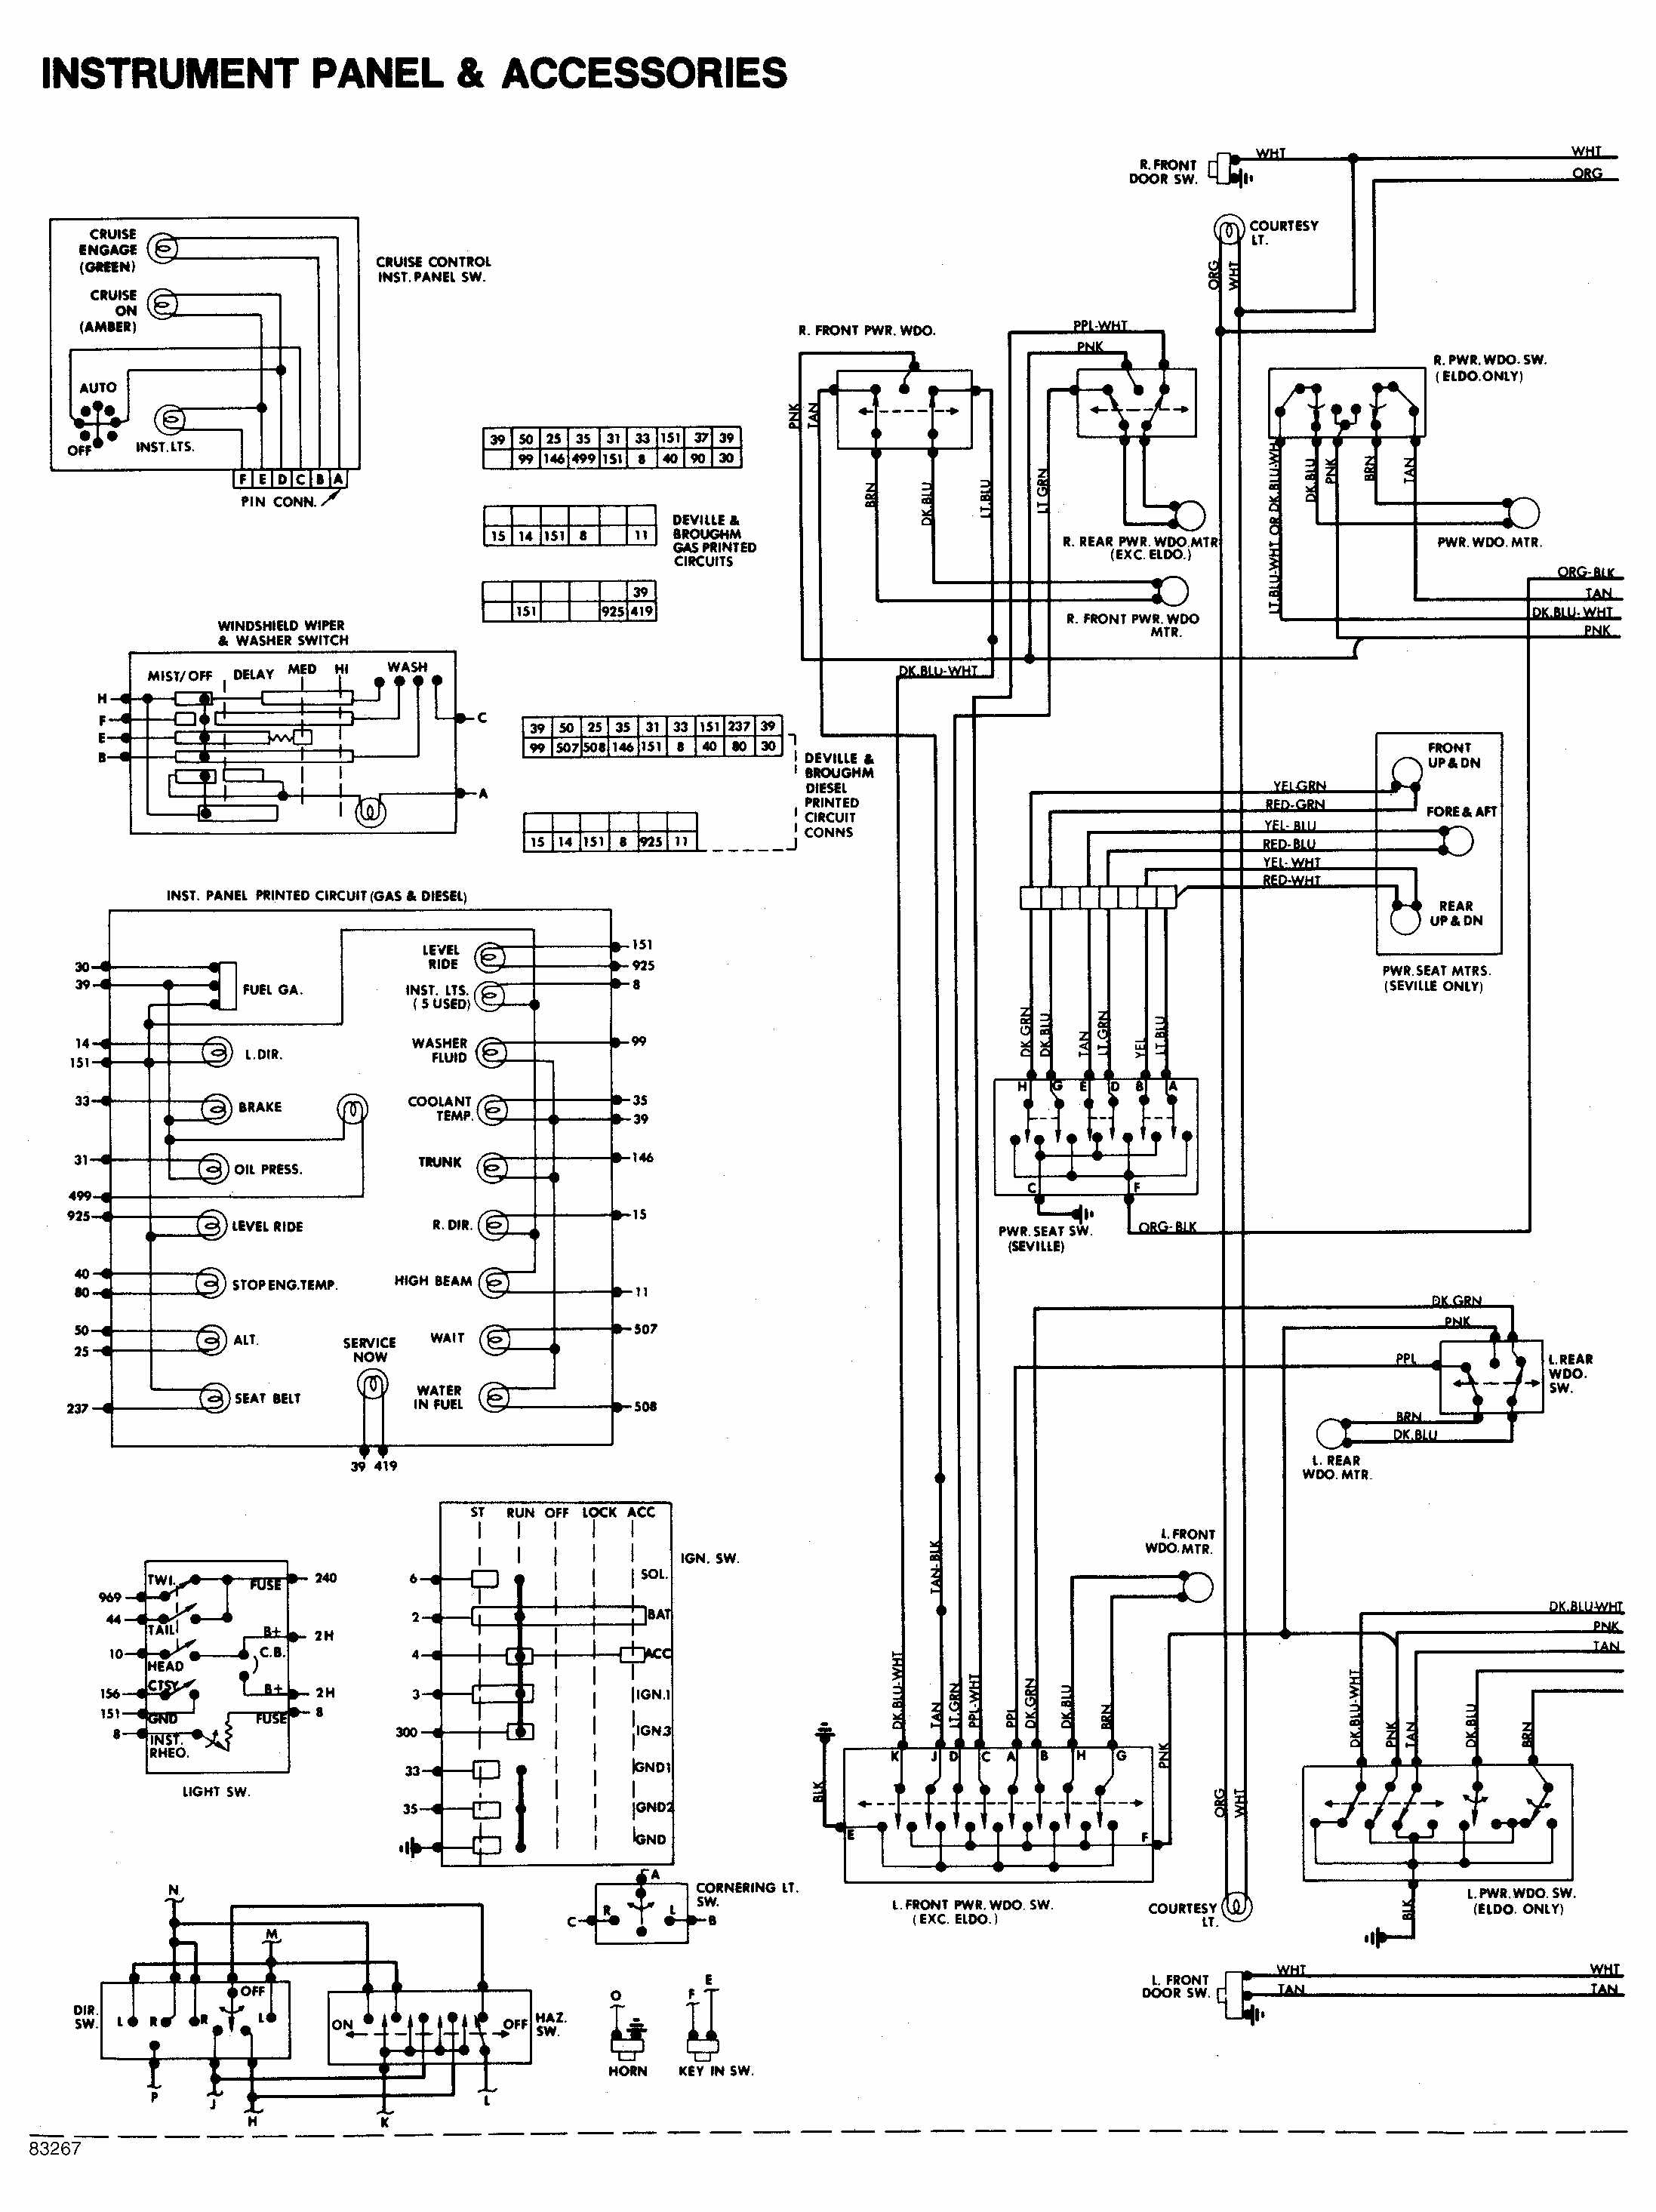 1968 Corvette Wiper Motor Wiring Diagram Schematic Diagrams 84 Camaro Ignition Chevy Ford For 68